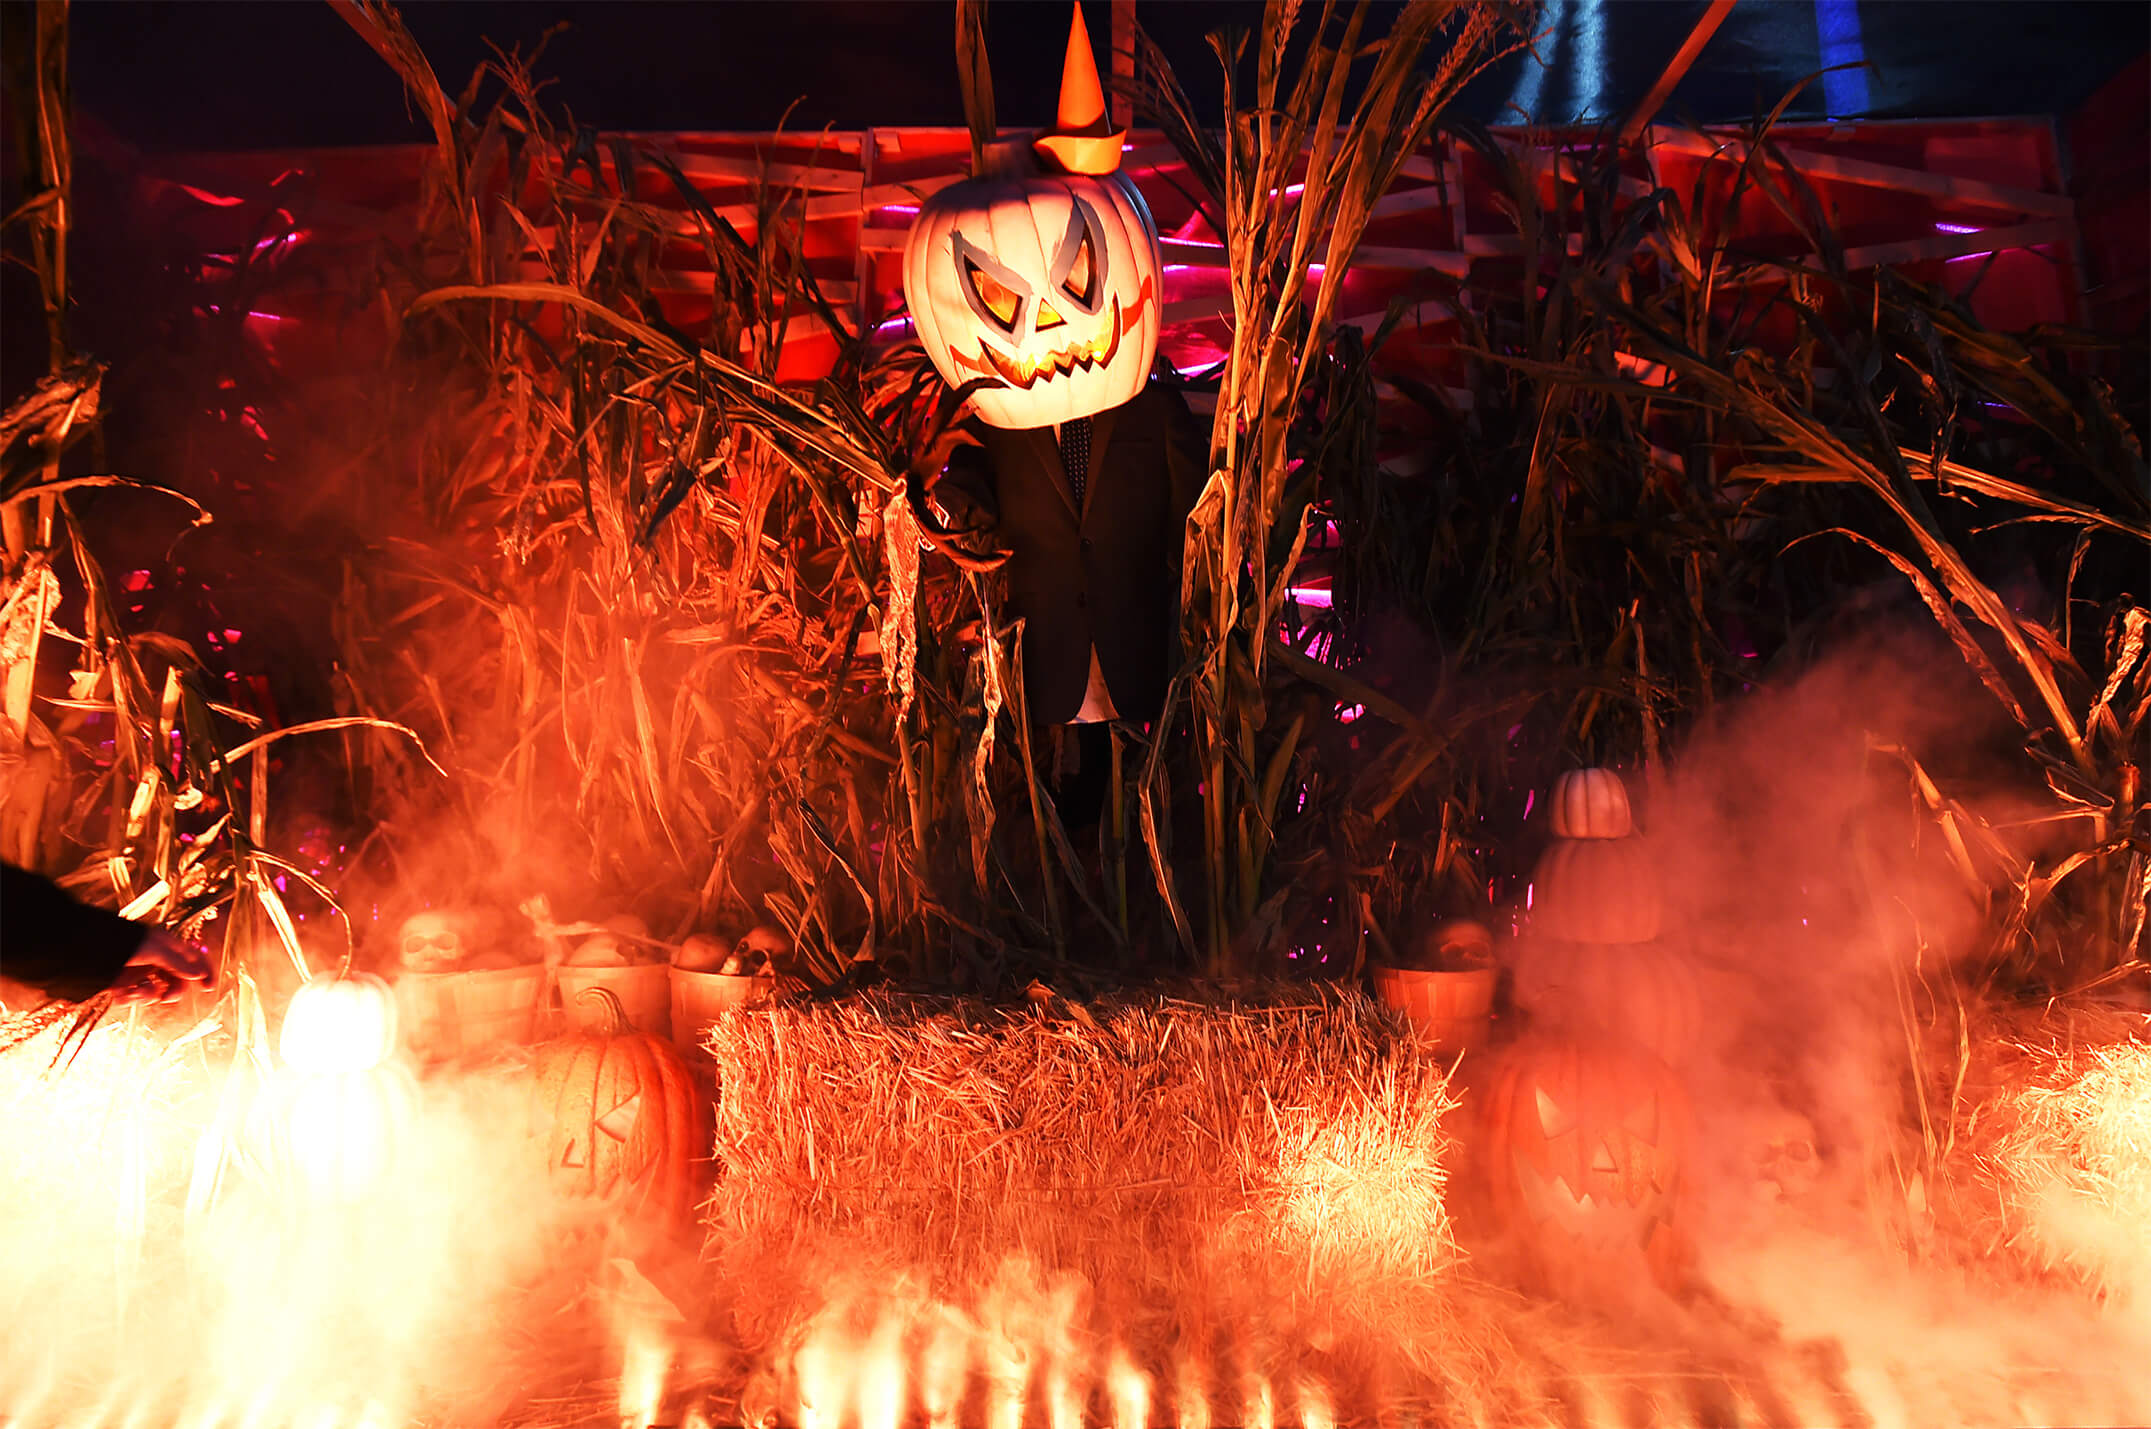 """The drive-thru experiential marketing activation included vignettes and live action scenes featuring some of the scariest villains imaginable –like a creepy clown named """"Ron,"""" a mad """"burger king,"""" and a crazy """"jack""""-o-lantern – all with striking resemblances to competitor mascots."""